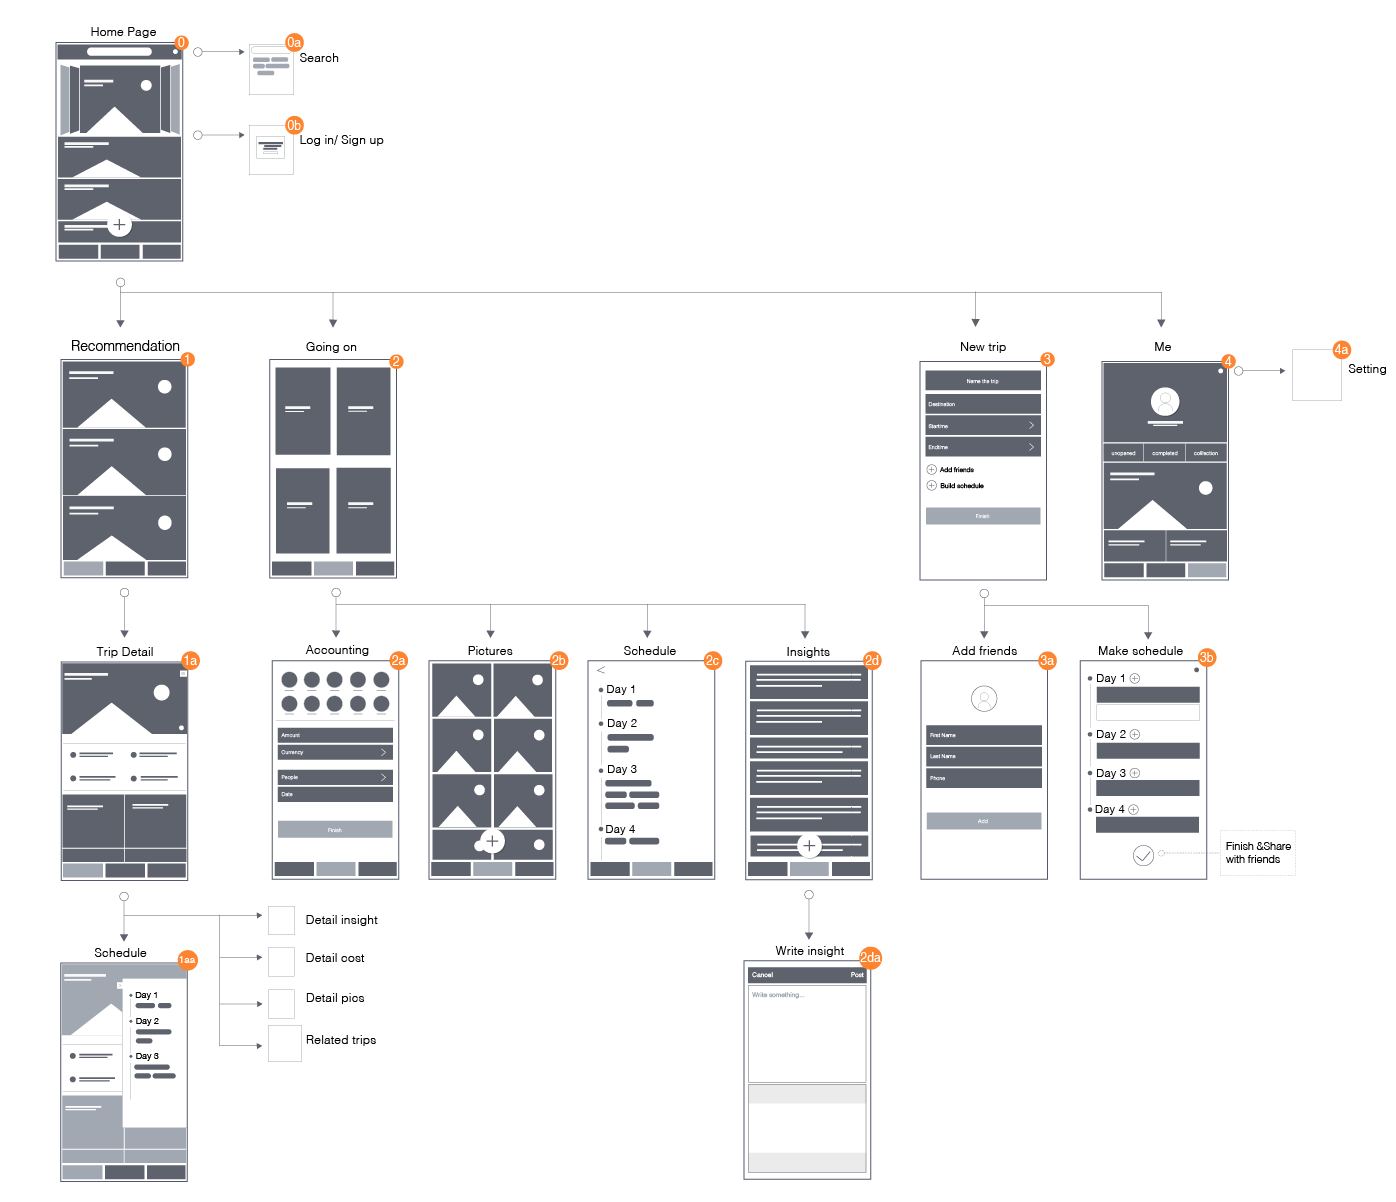 The user flow sturcture